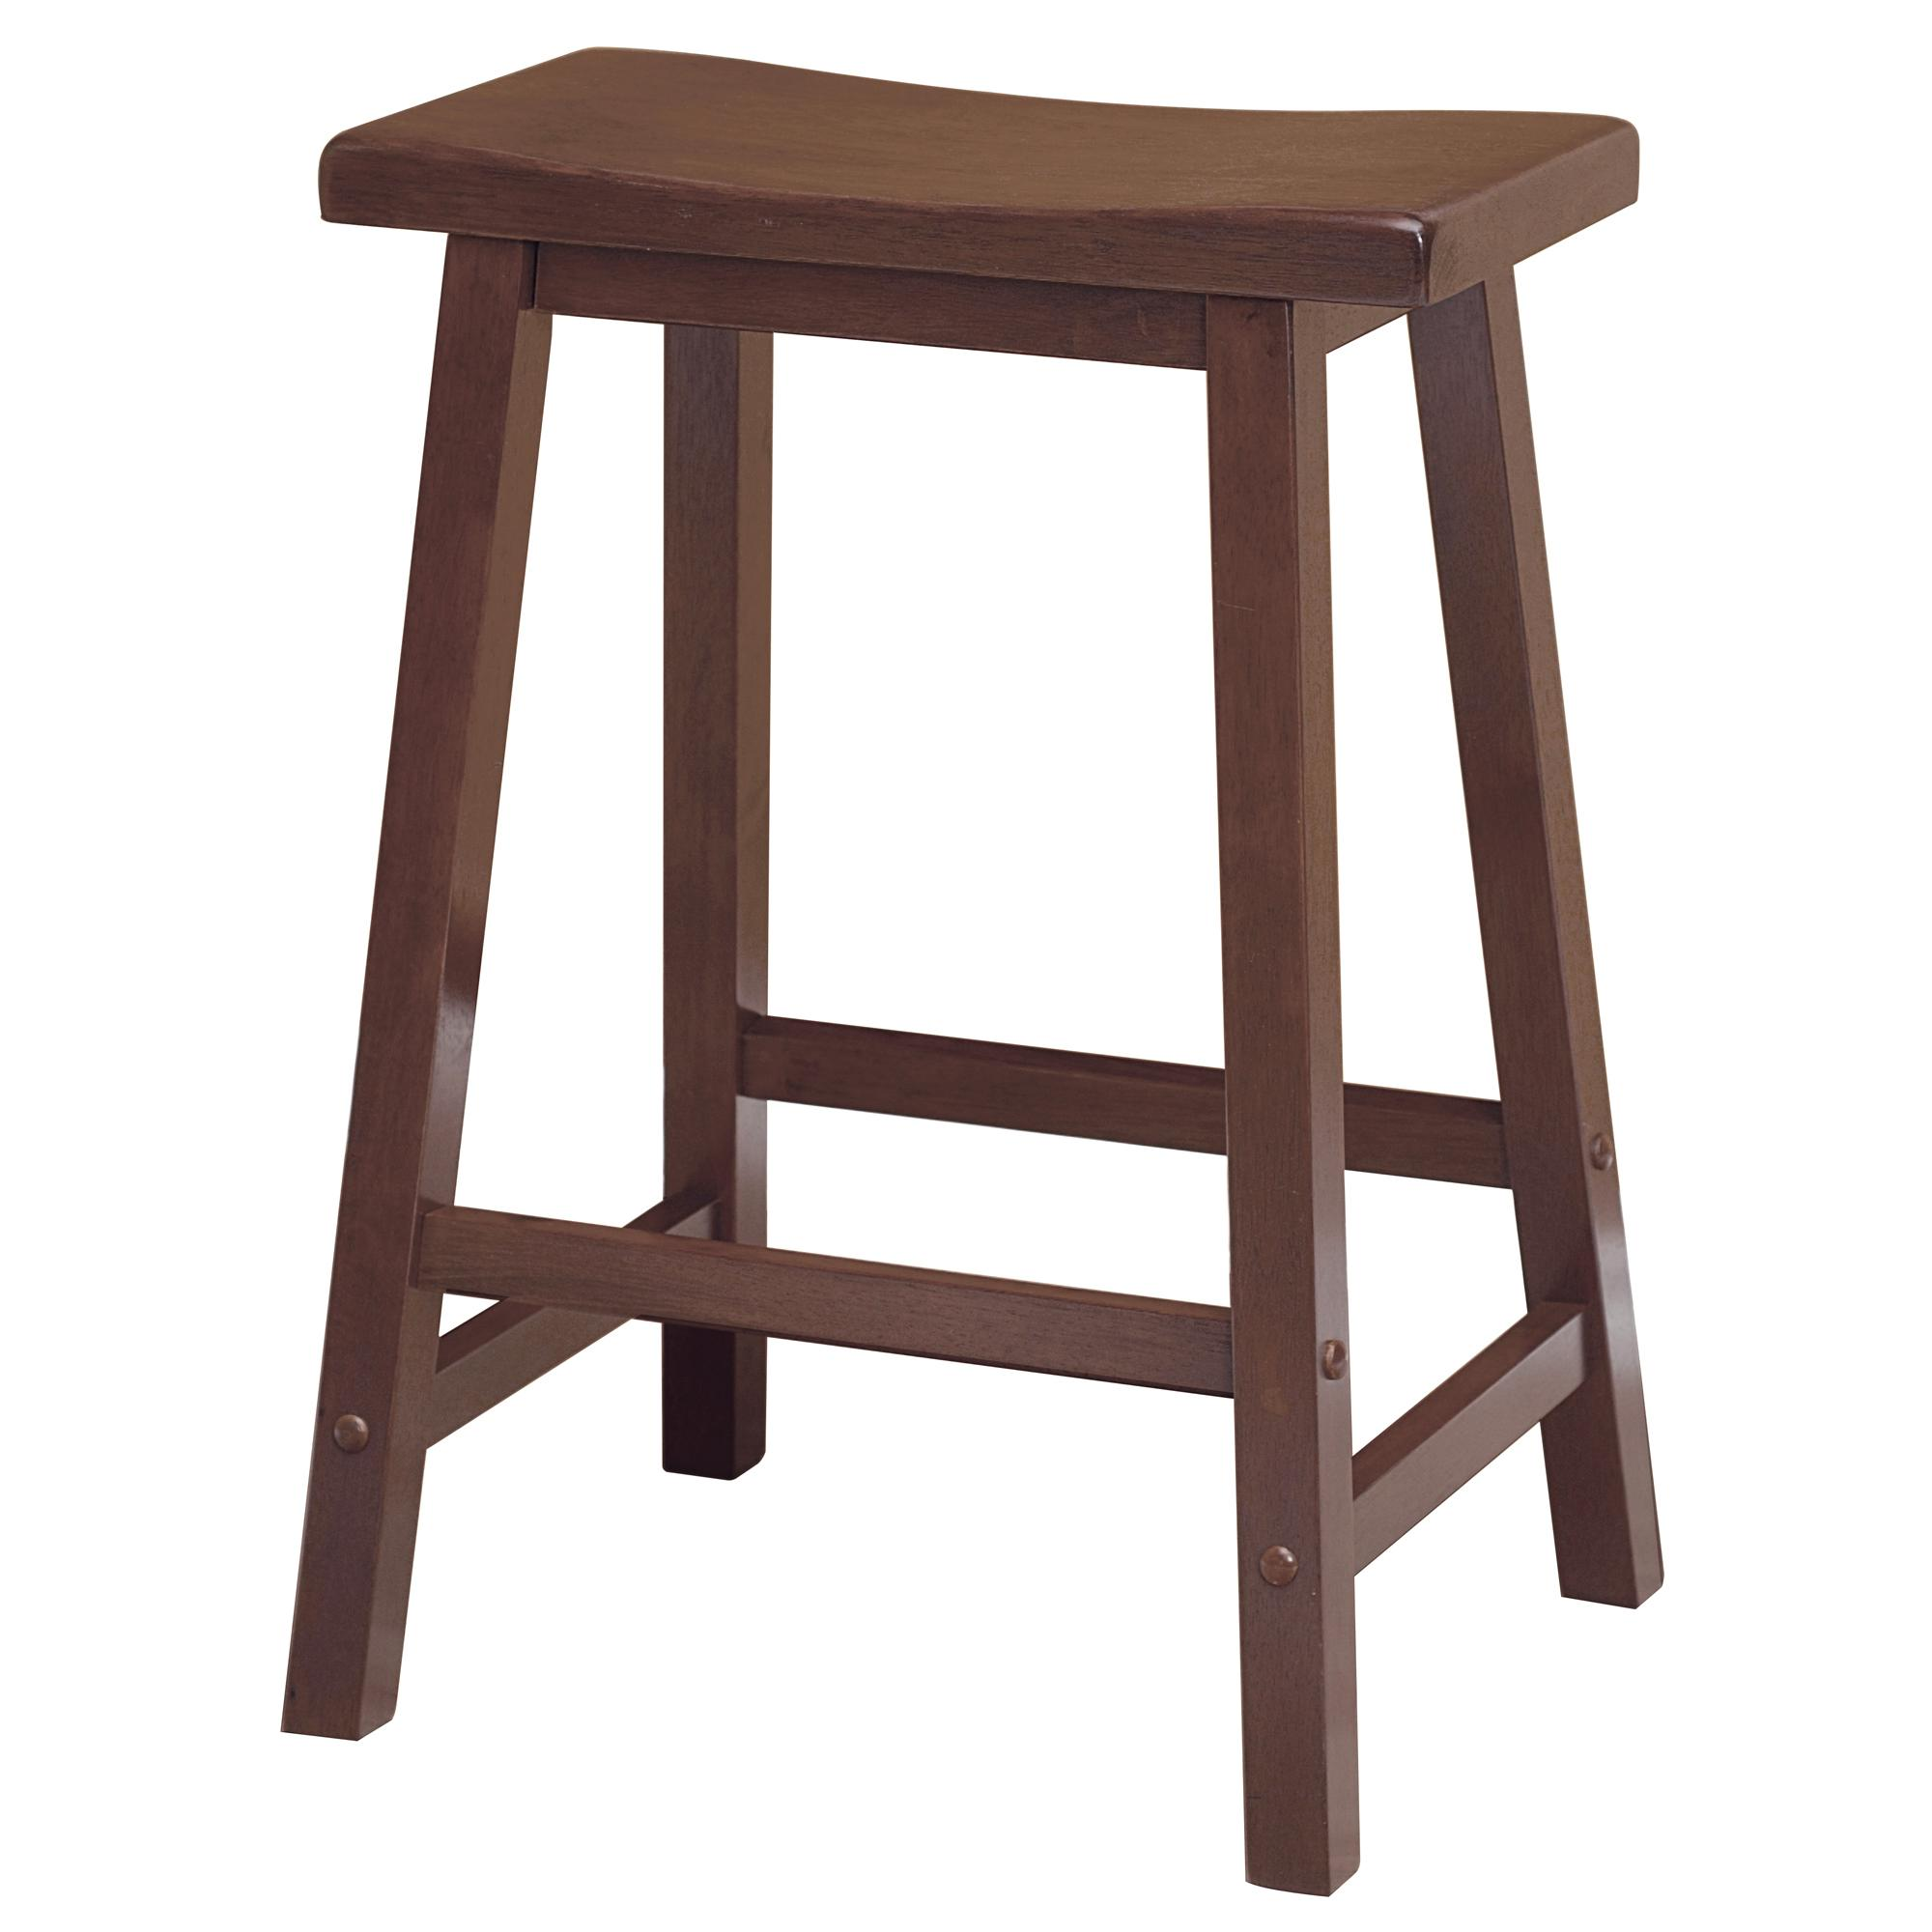 View larger  sc 1 st  Amazon.com : oak saddle stool - islam-shia.org